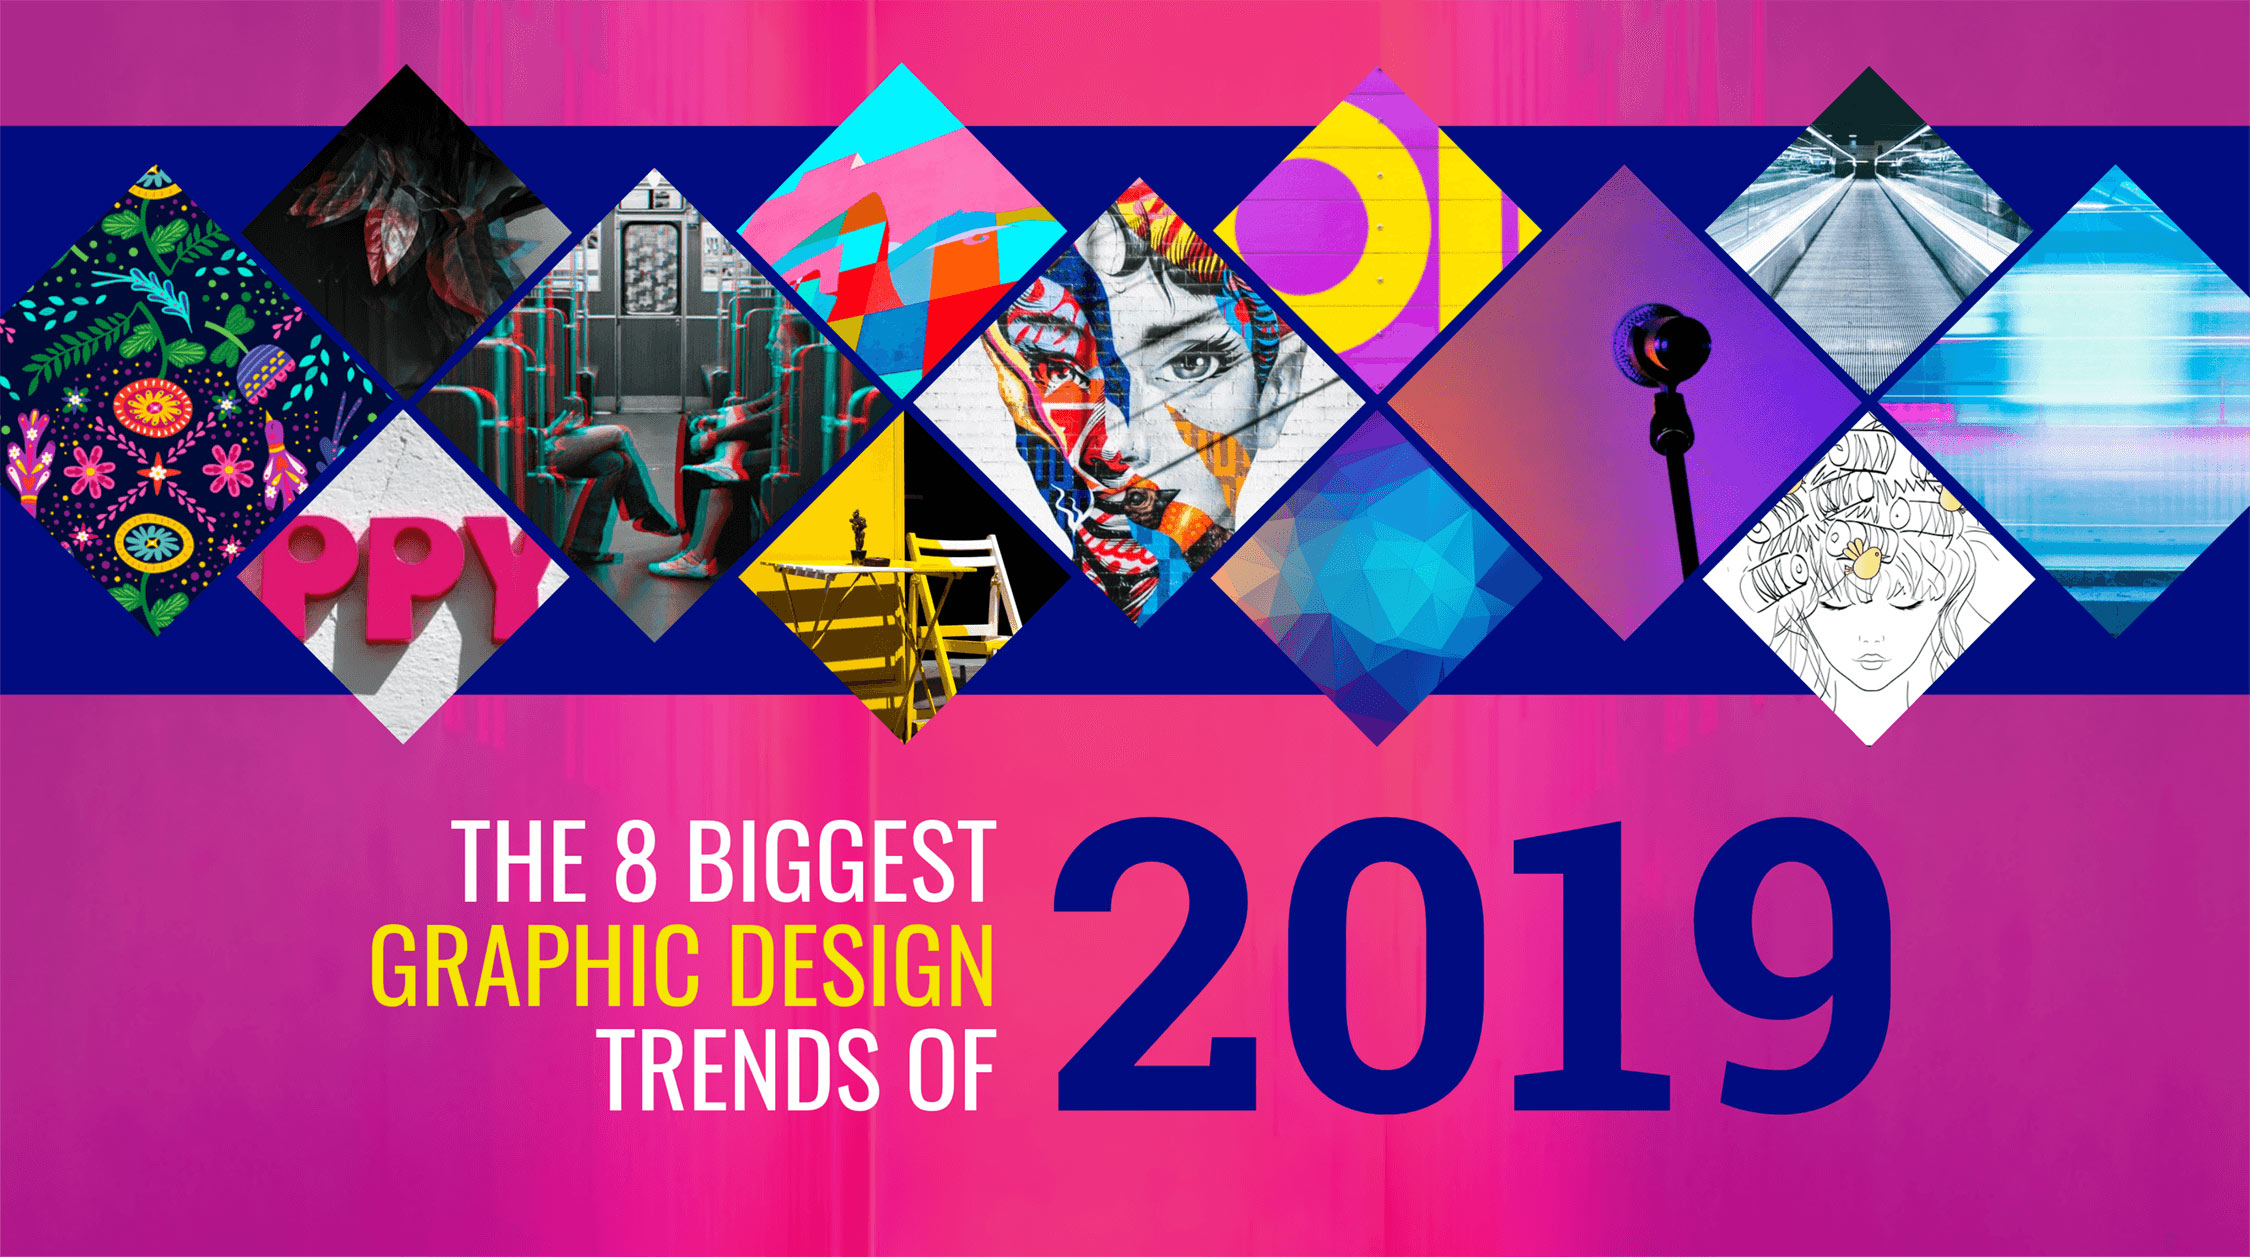 The 8 Biggest Graphic Design Trends That Will Dominate 2019 ... f76e1f34c